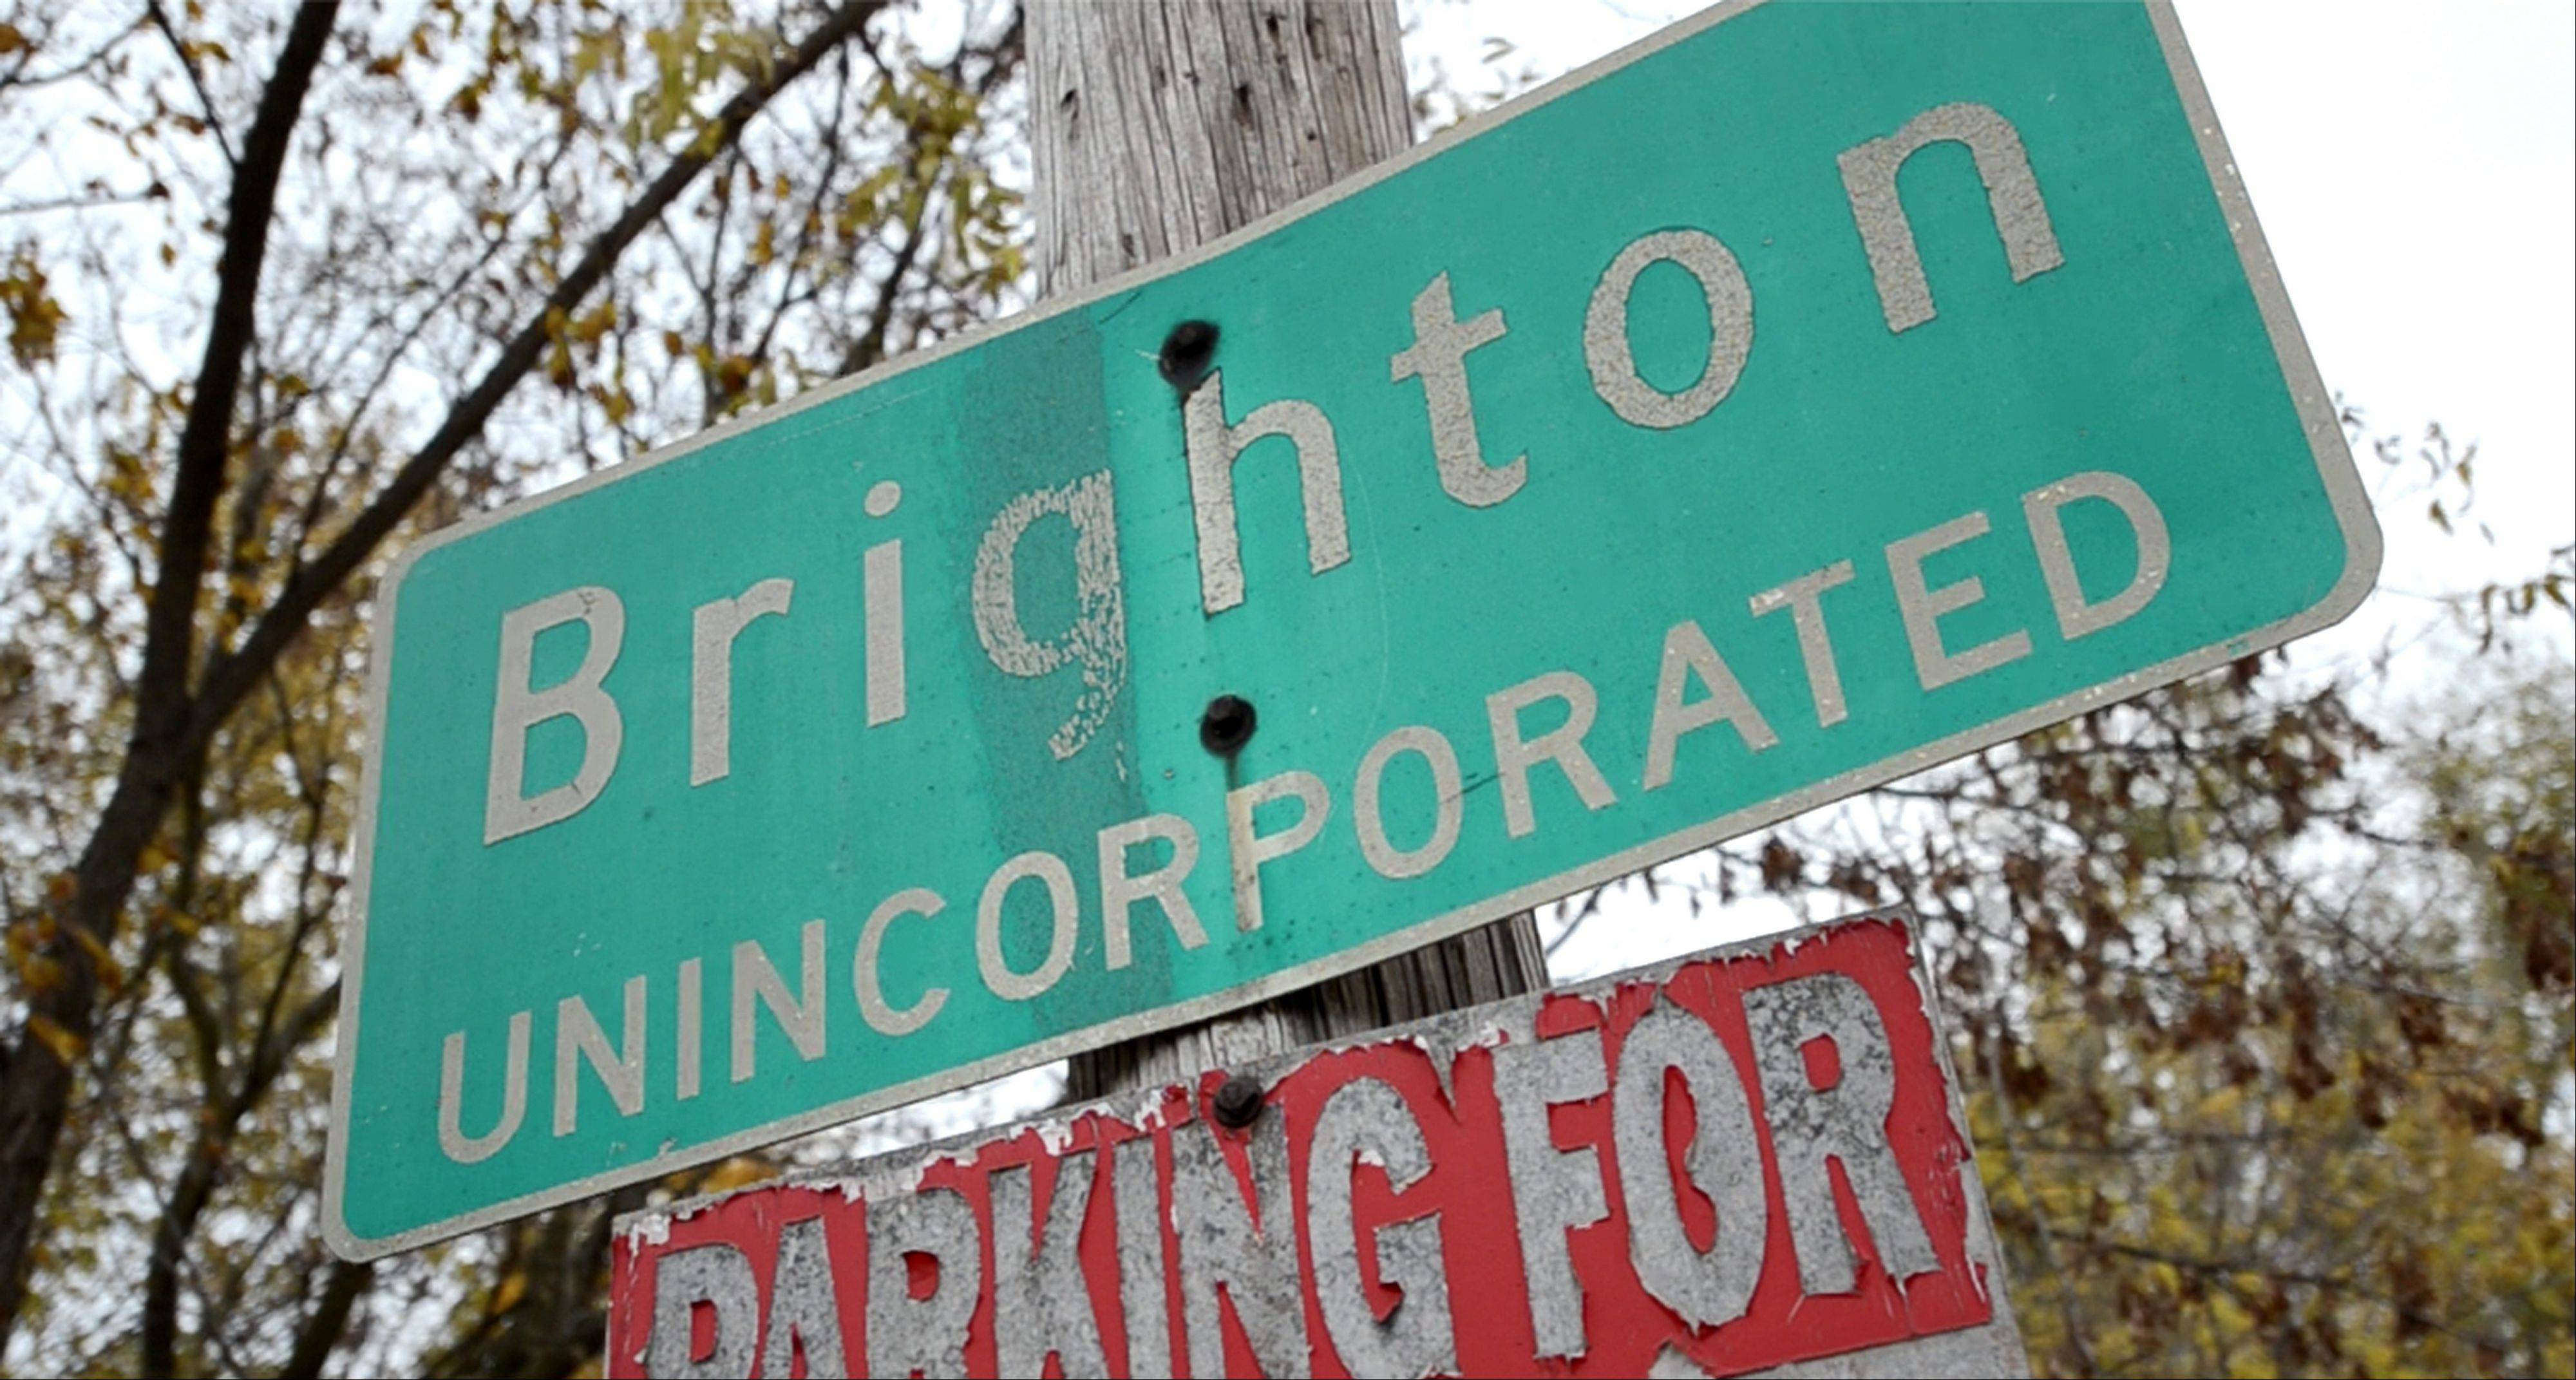 The small town of Brighton, Wis., is just over the border from Illinois.